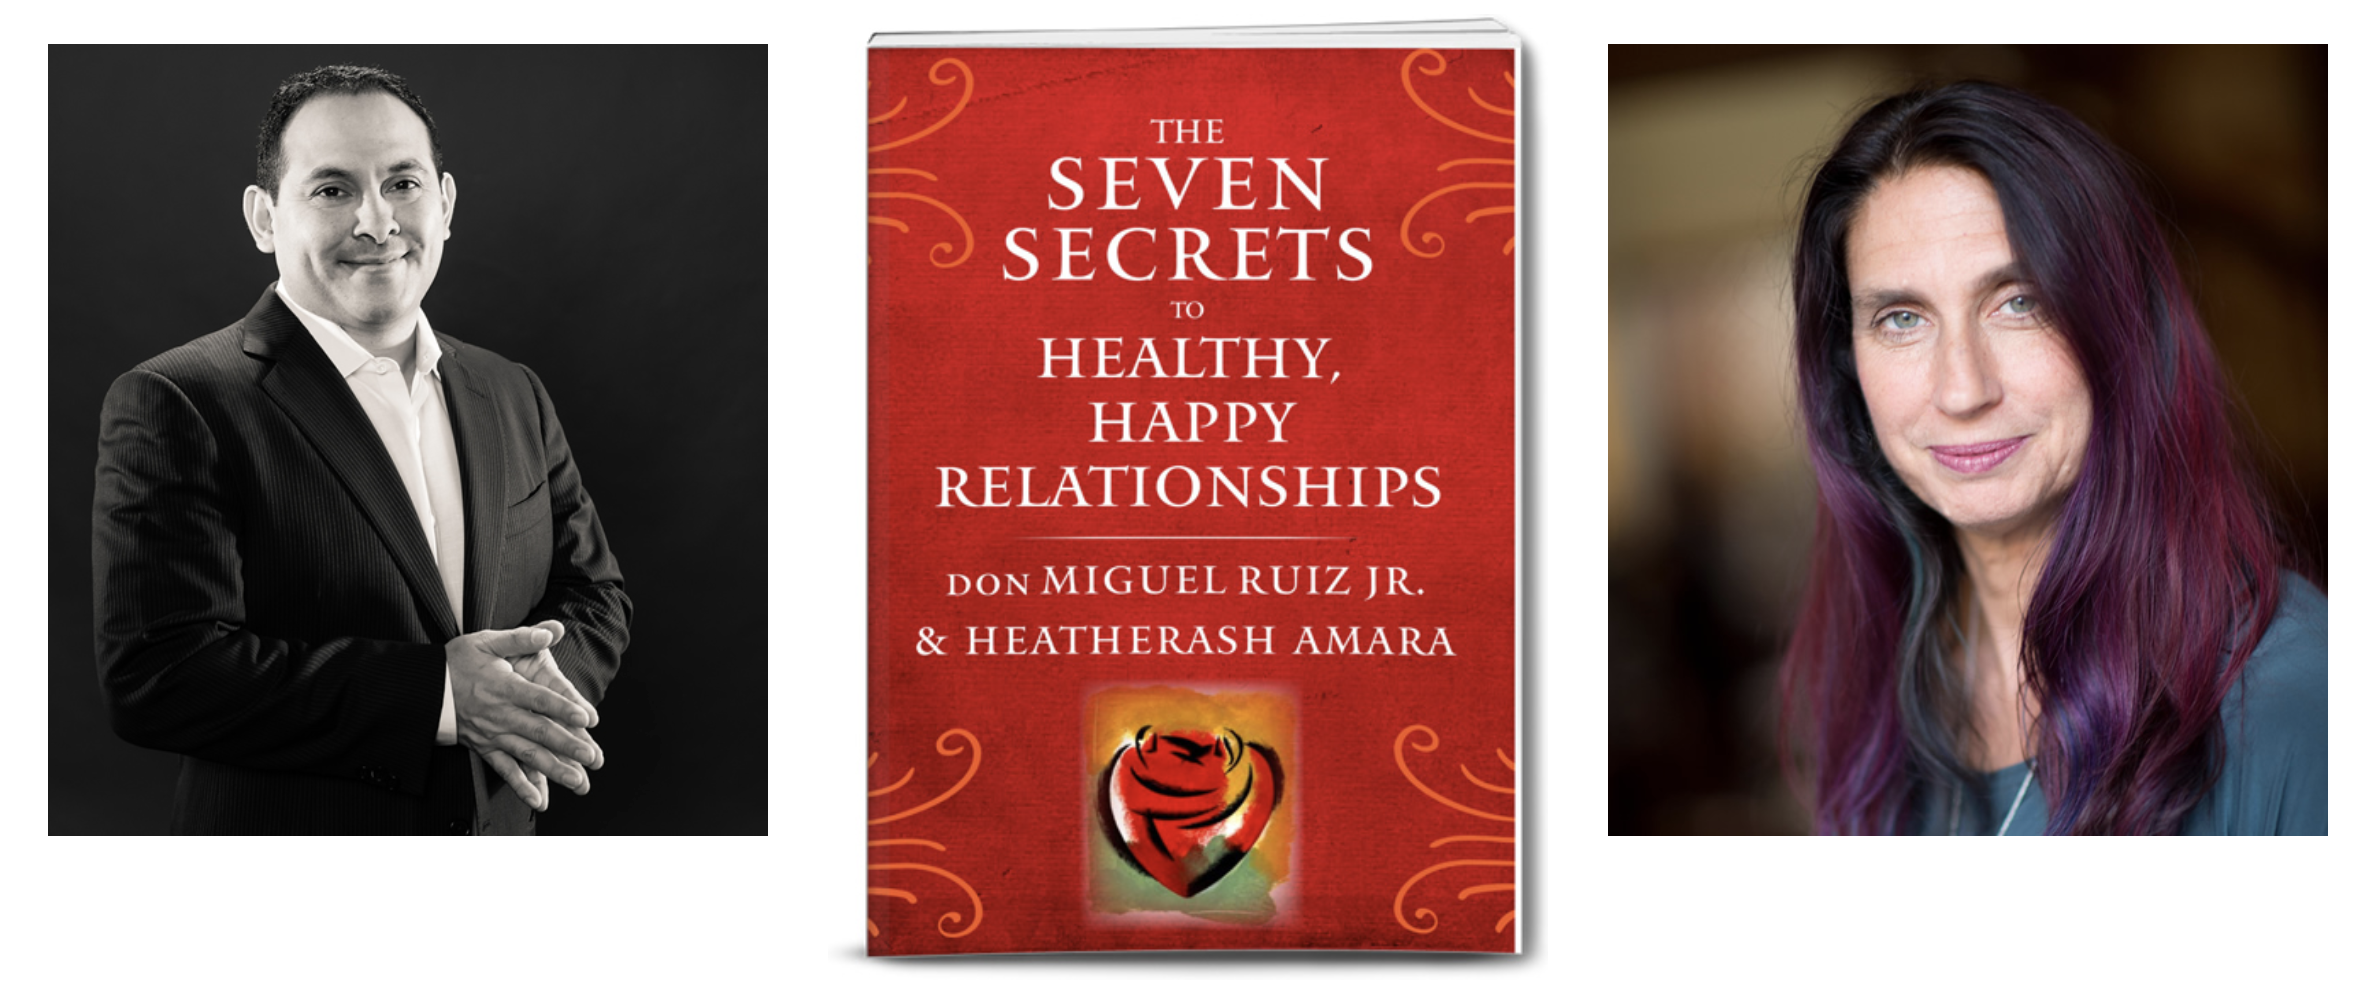 dMR Jr and HAAmara 7 Secrets Book Cover.png